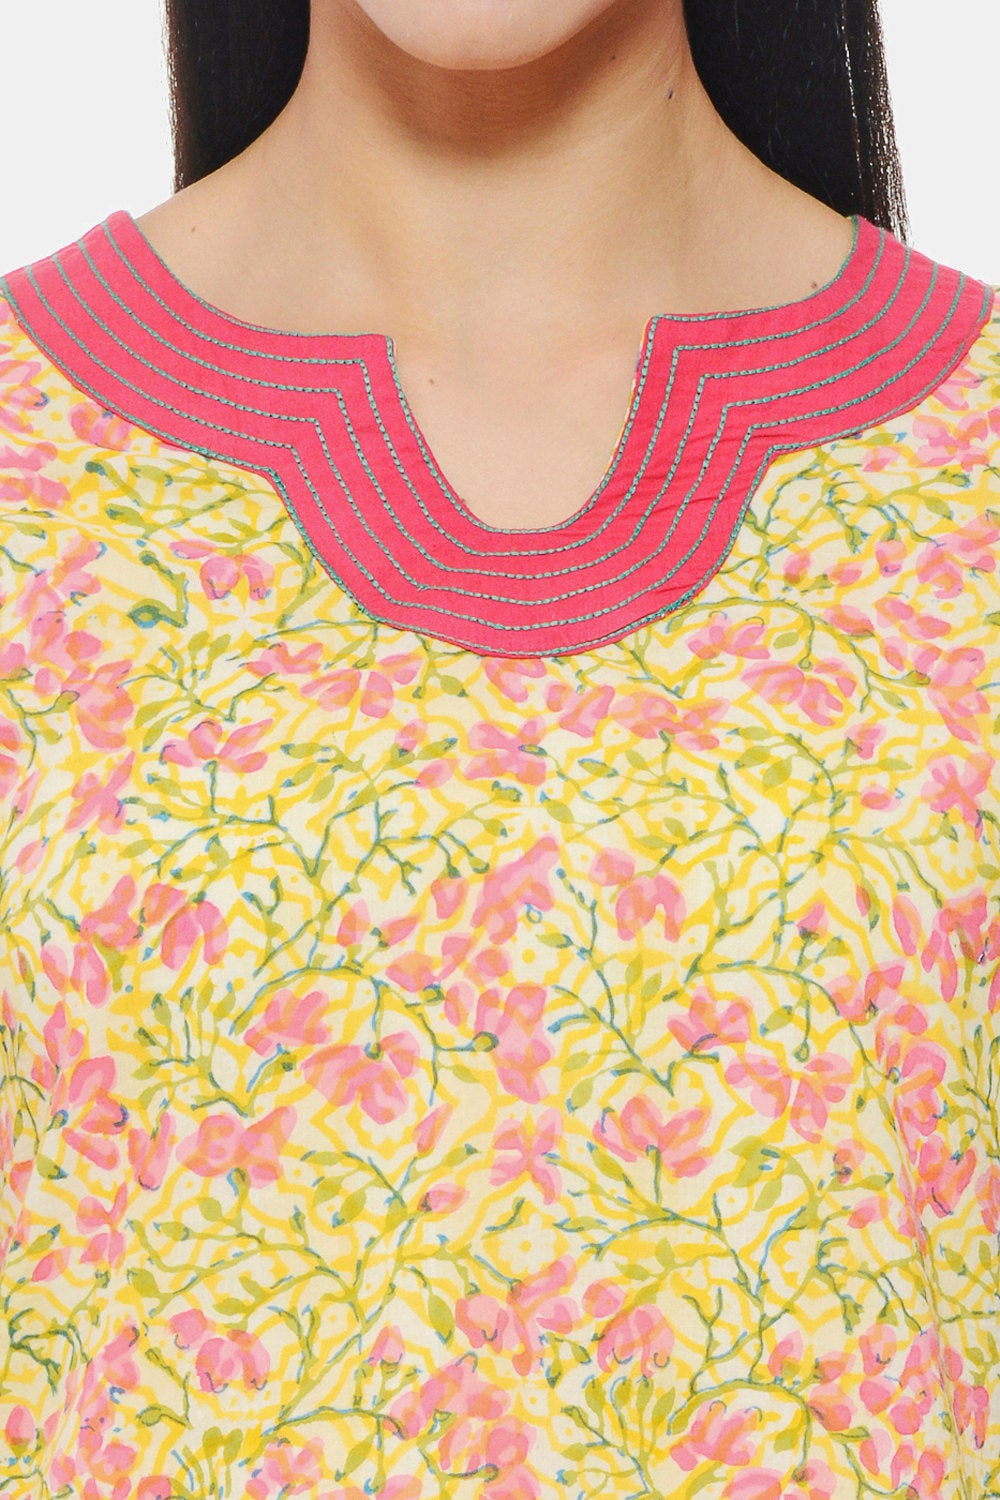 Hand Block Printed Indian Tunic in yellow floral design with Embroidery on neck and sleeves